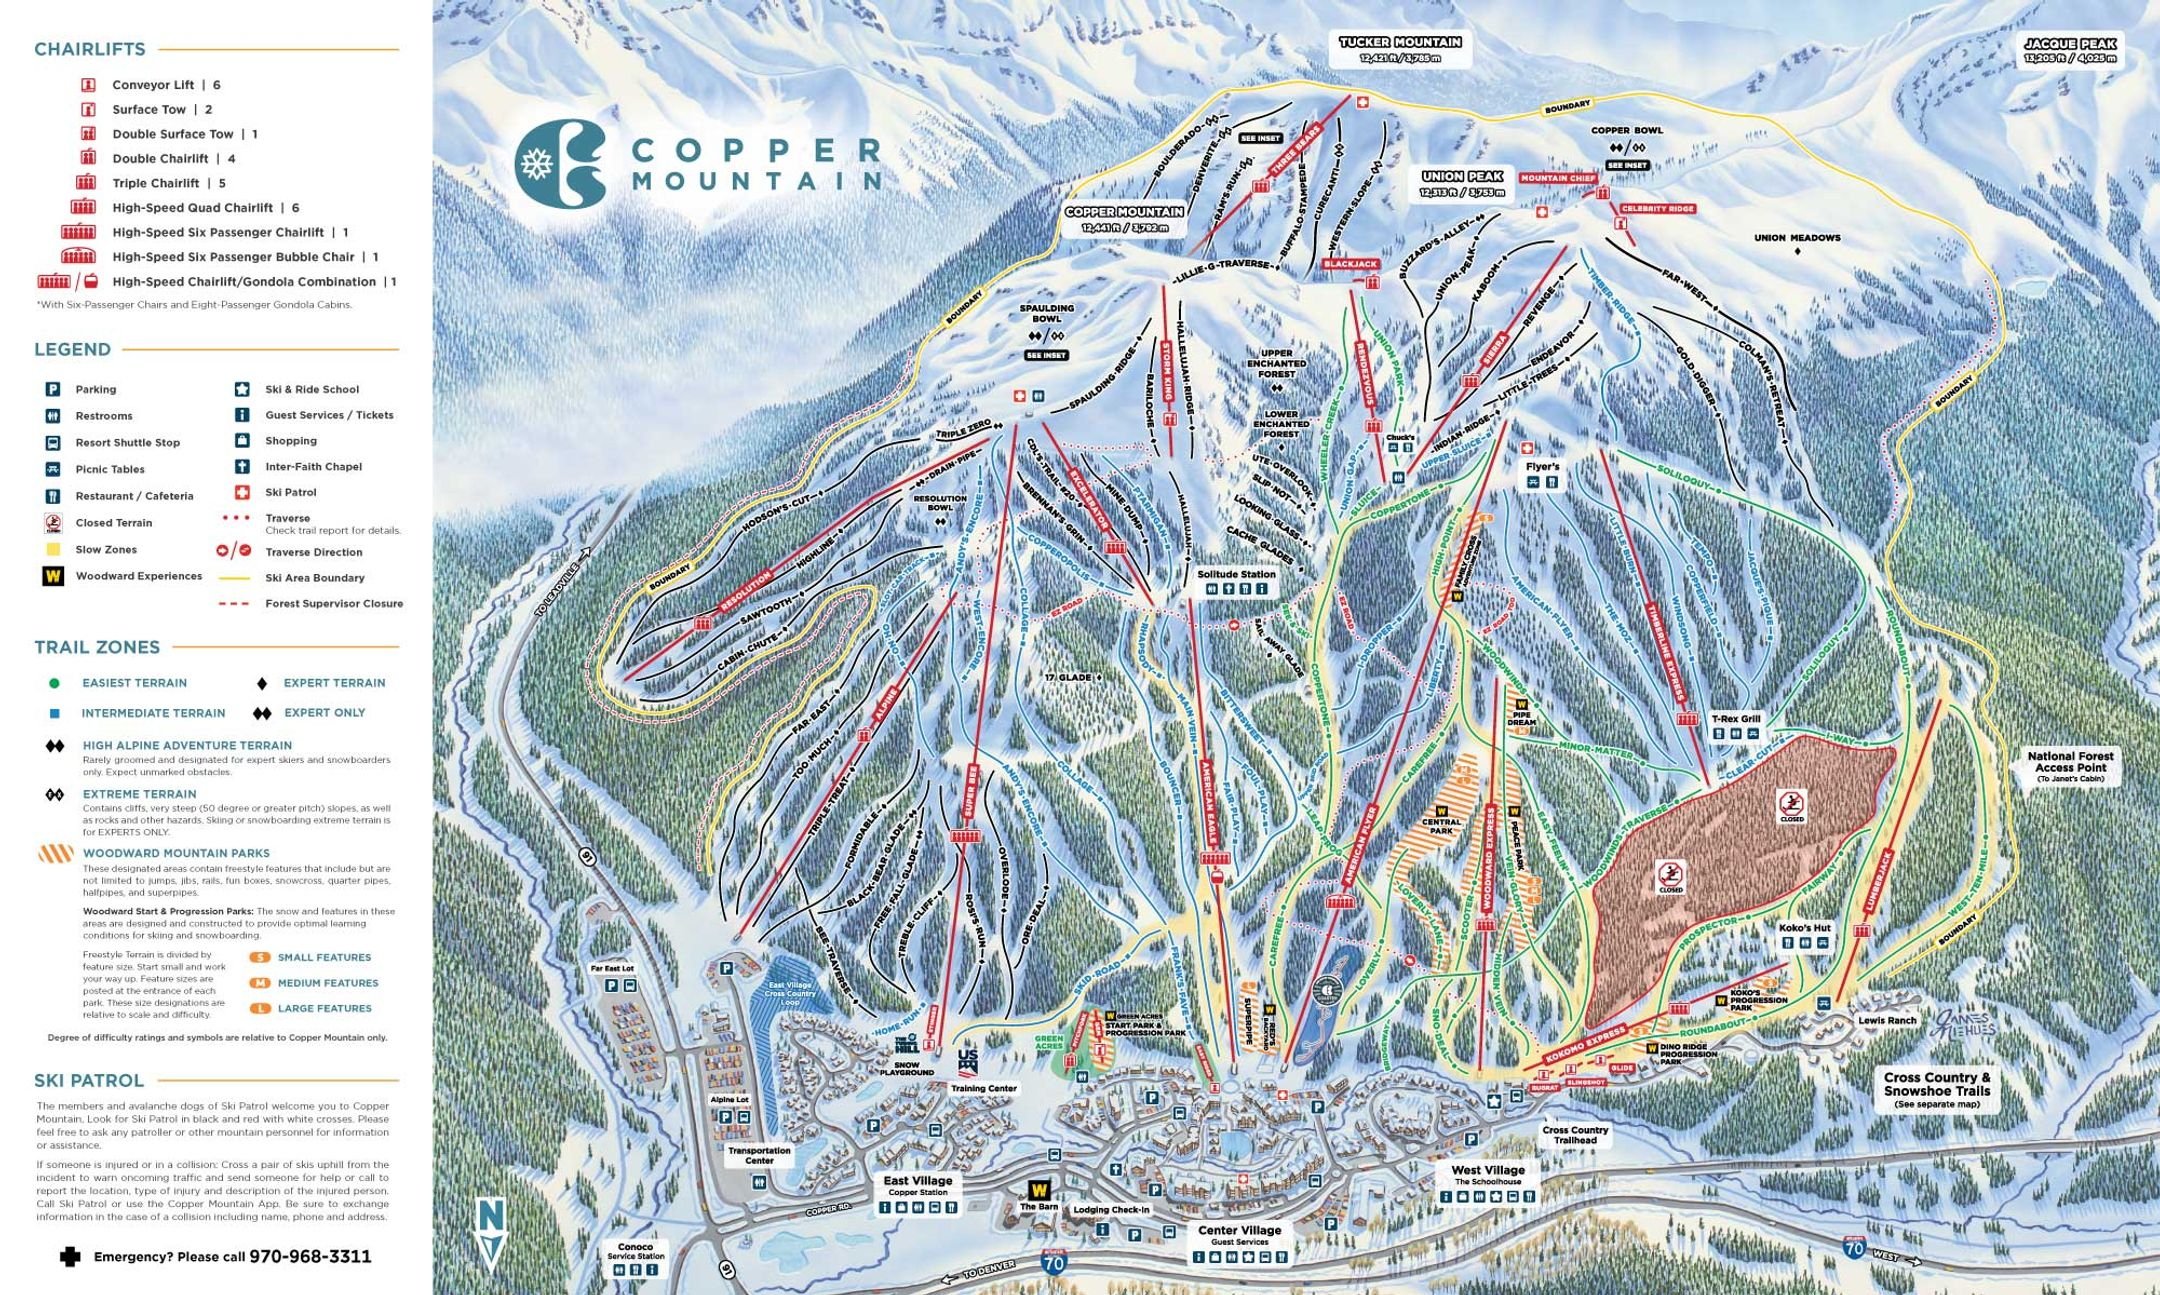 Copper Mountain ski-resort-trail-map United States ripatrip